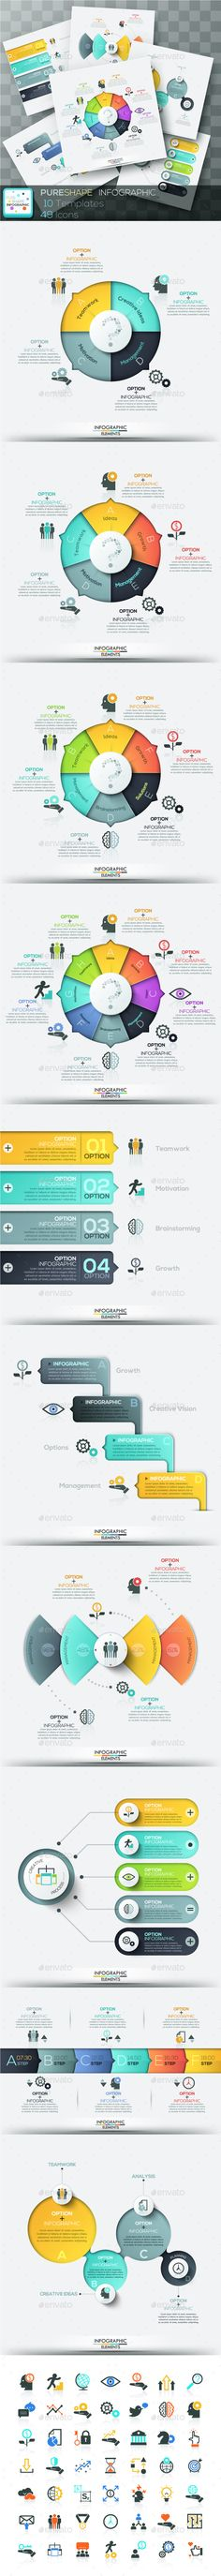 Pure Shape Infographic Templates. Download here: http://graphicriver.net/item/pure-shape-infographic/15818237?ref=ksioks